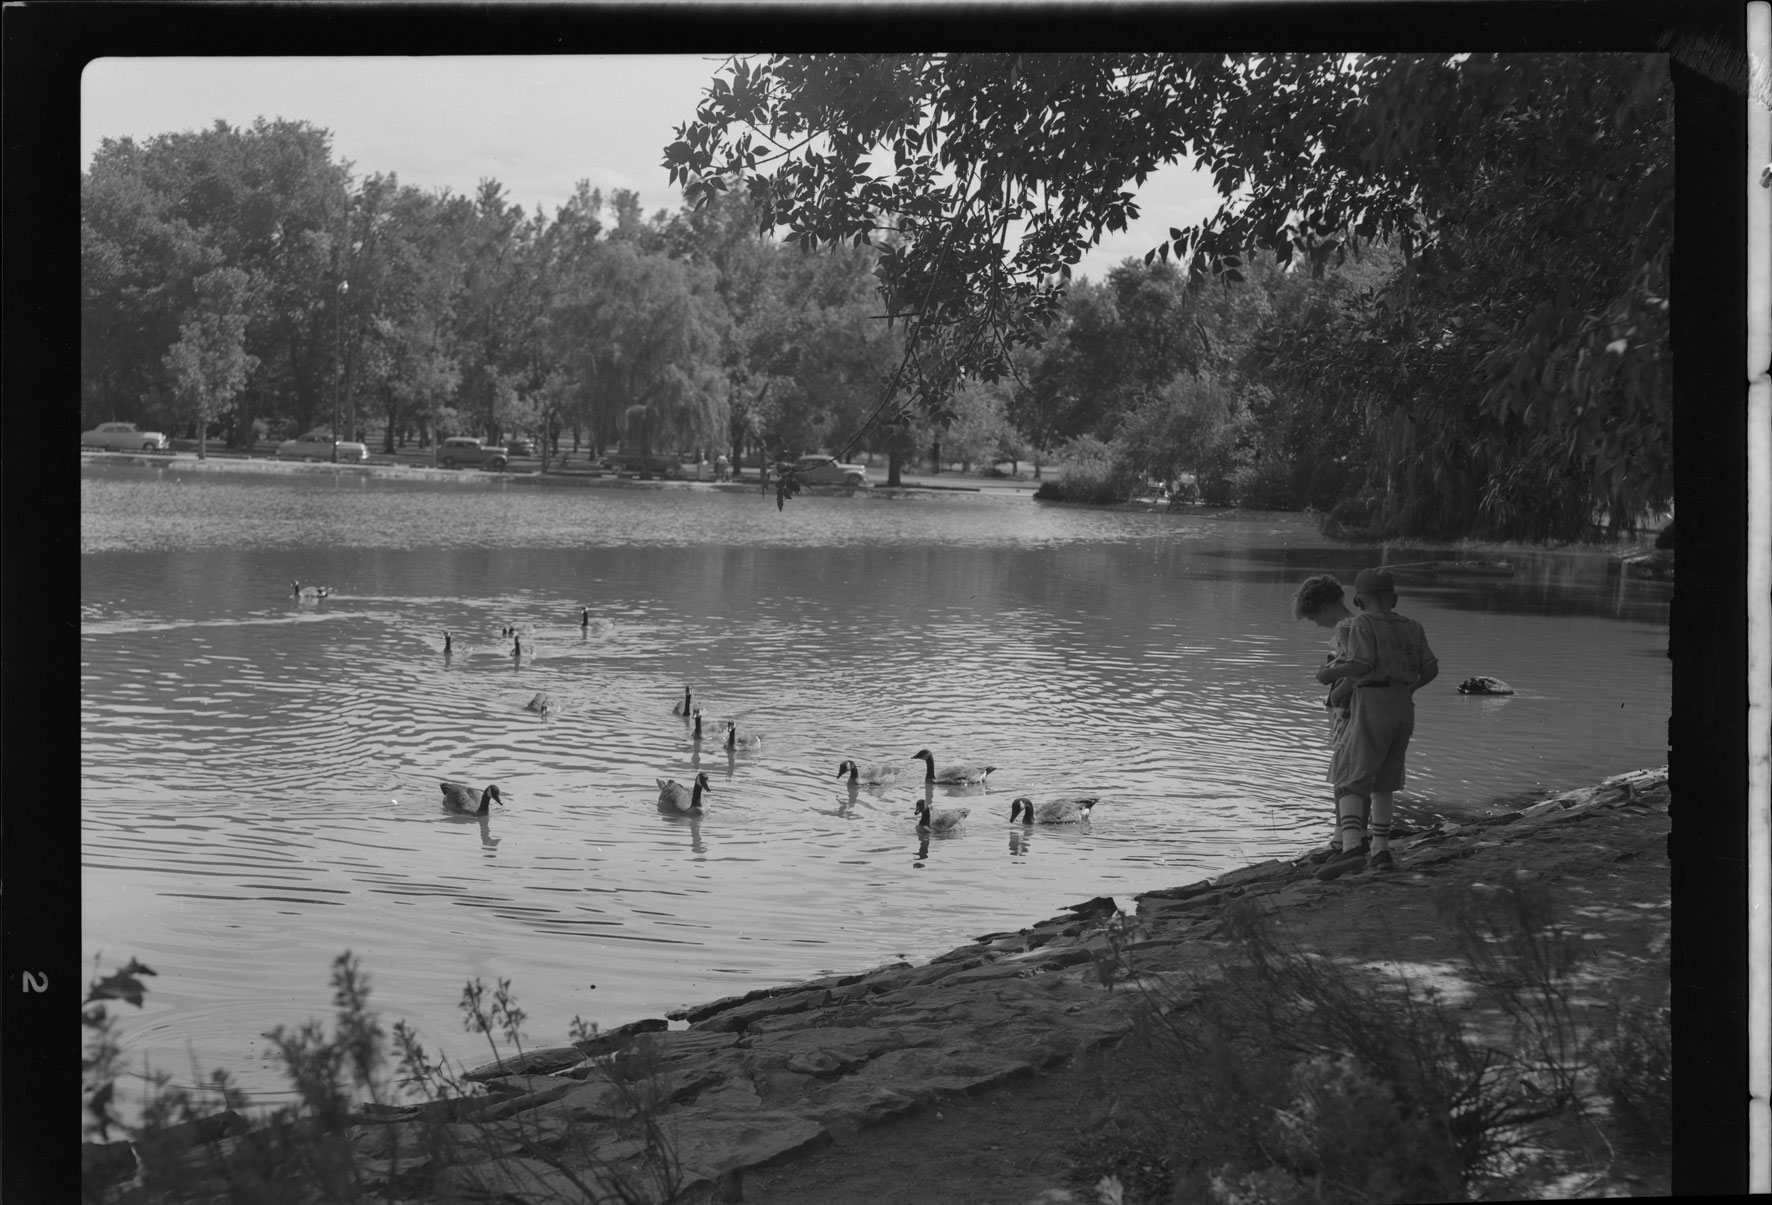 Boys feeding geese at City Park lake